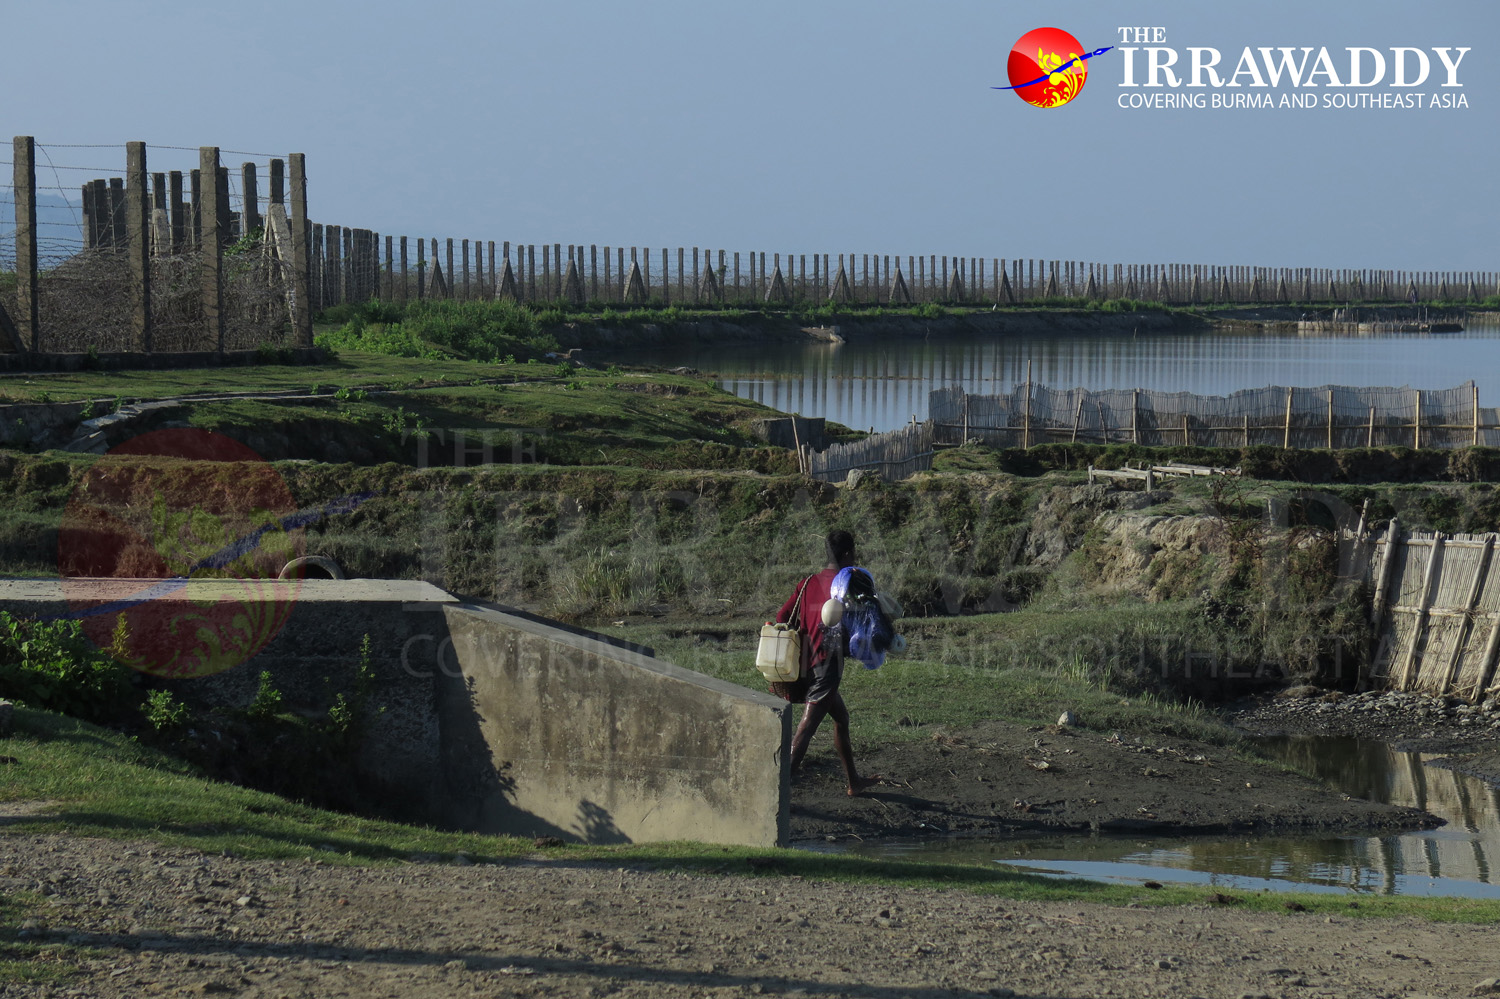 A fisherman walks near the border fence in the western part of Maungdaw town. (Photo: Moe Myint / The Irrawaddy)